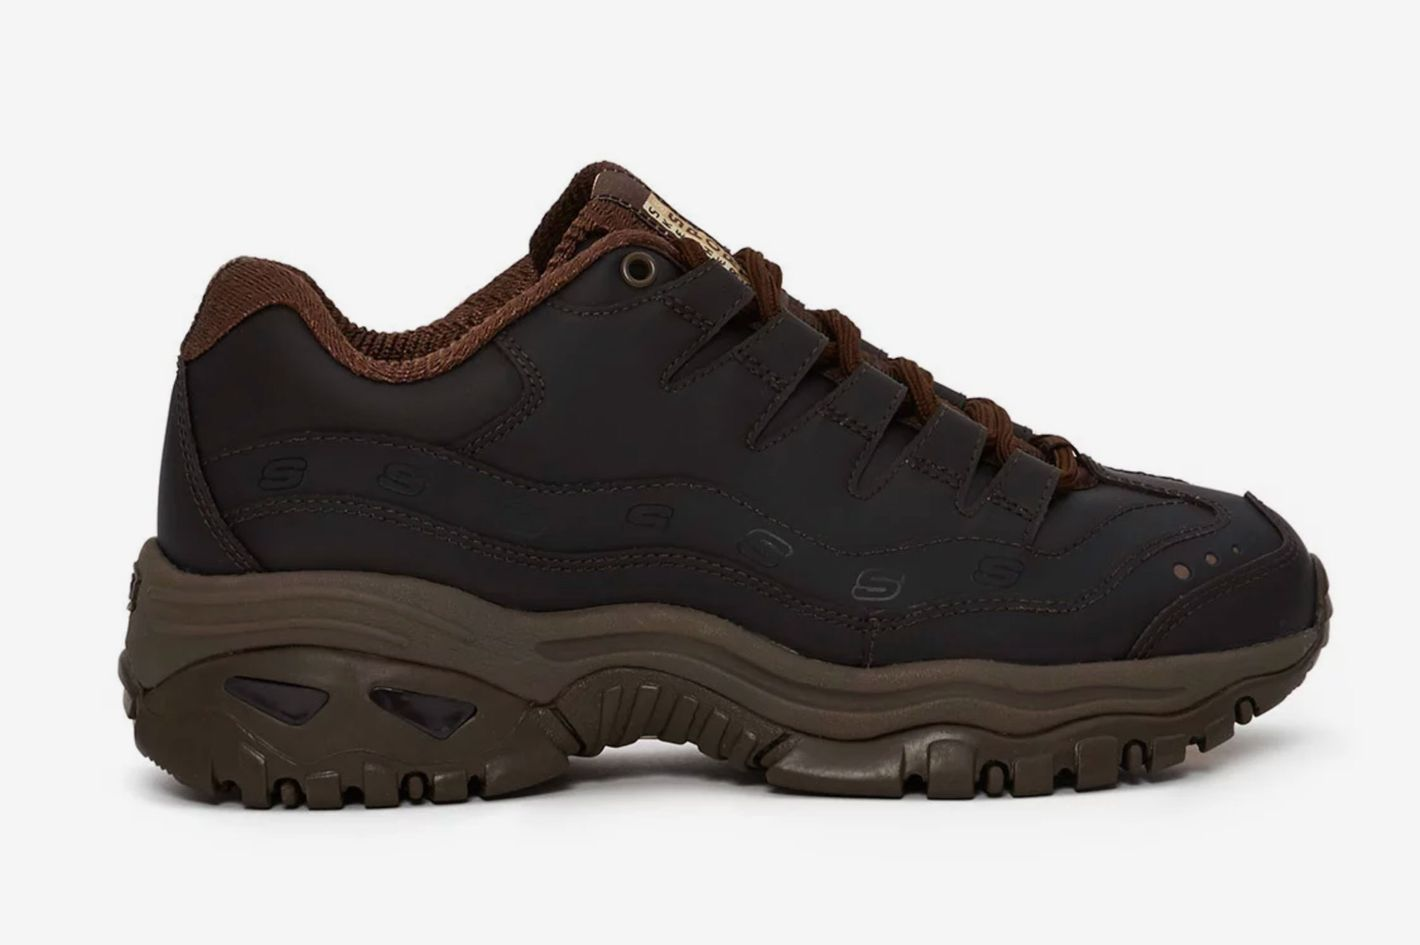 Opening Ceremony x Skechers Energy Sneaker in Chocolate